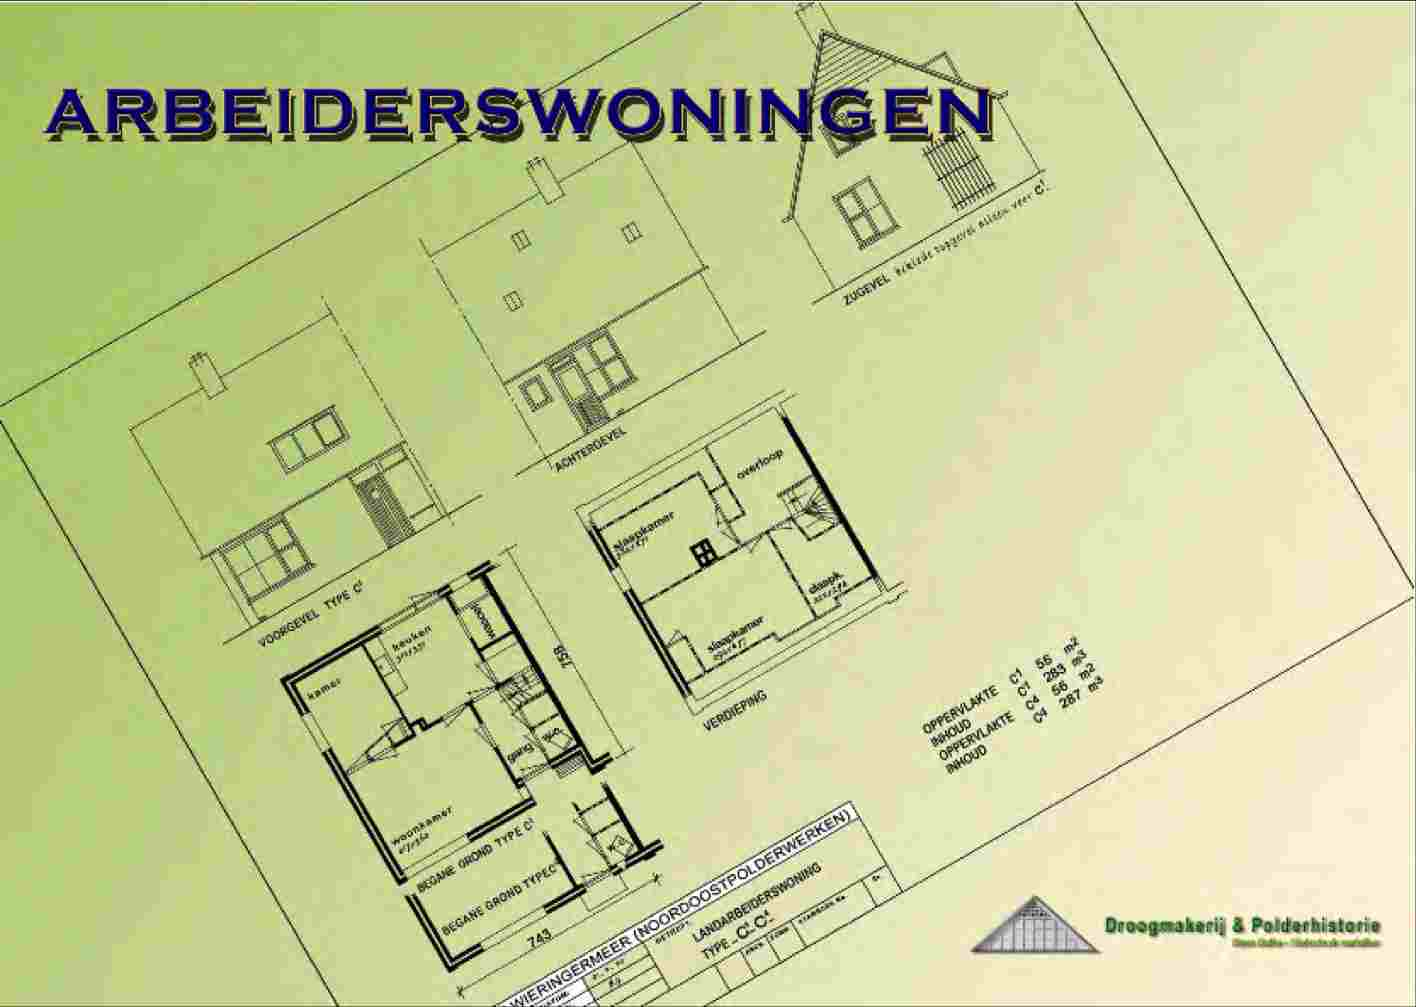 Floorplan of workers' houses.